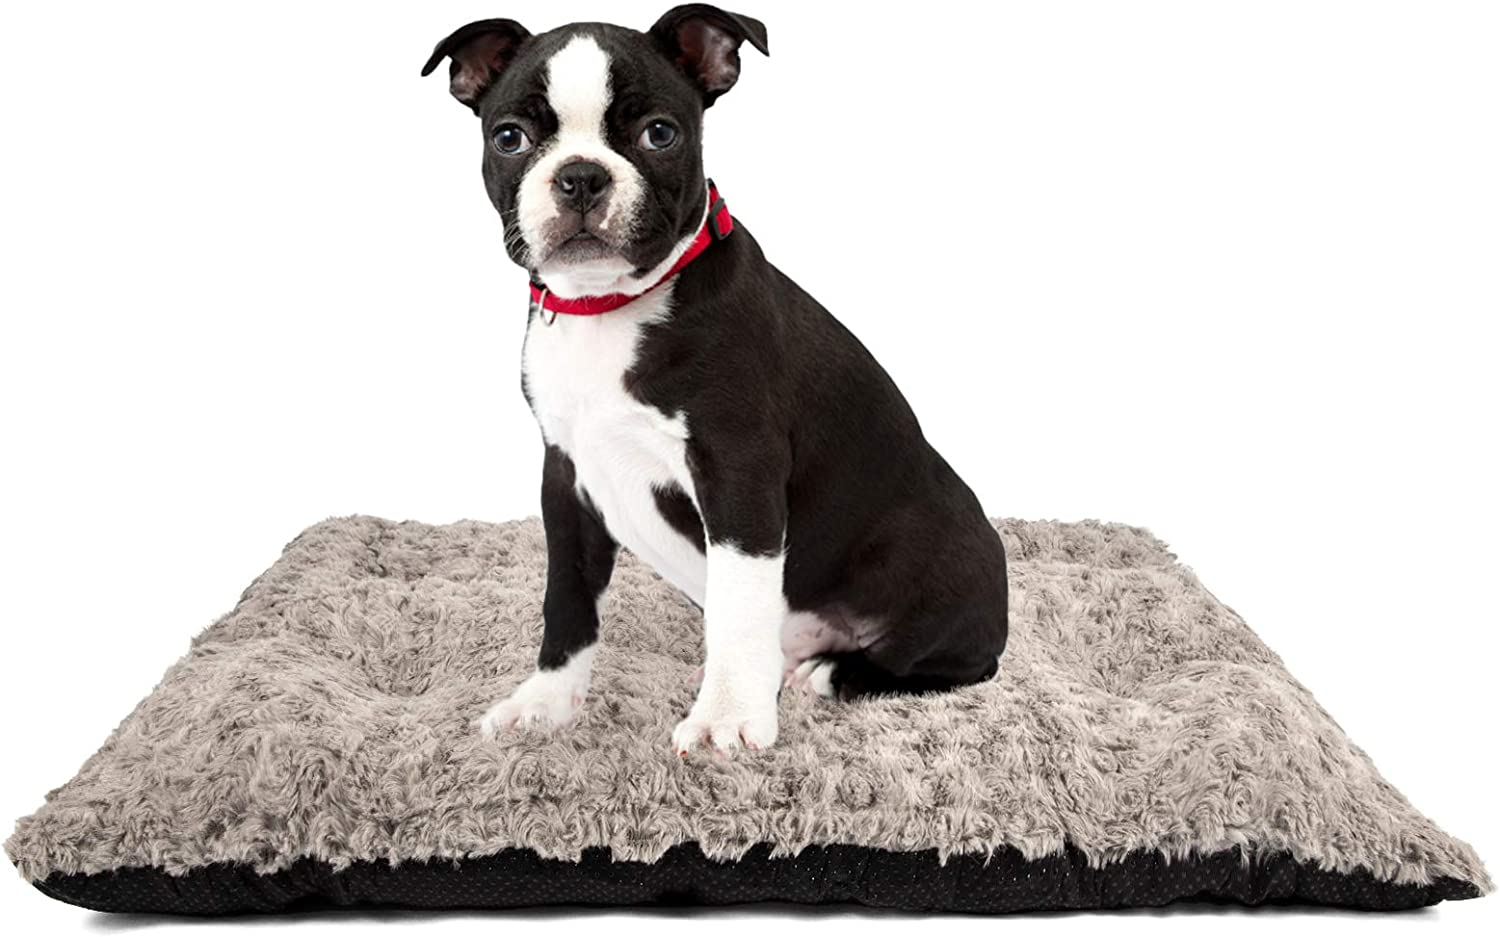 SIWA MARY Dog Bed Crate Pad Ultra Soft Mat Anti Slip Washable Cozy Kennel Pad for Large Medium Small Dogs and Cats Sleeping